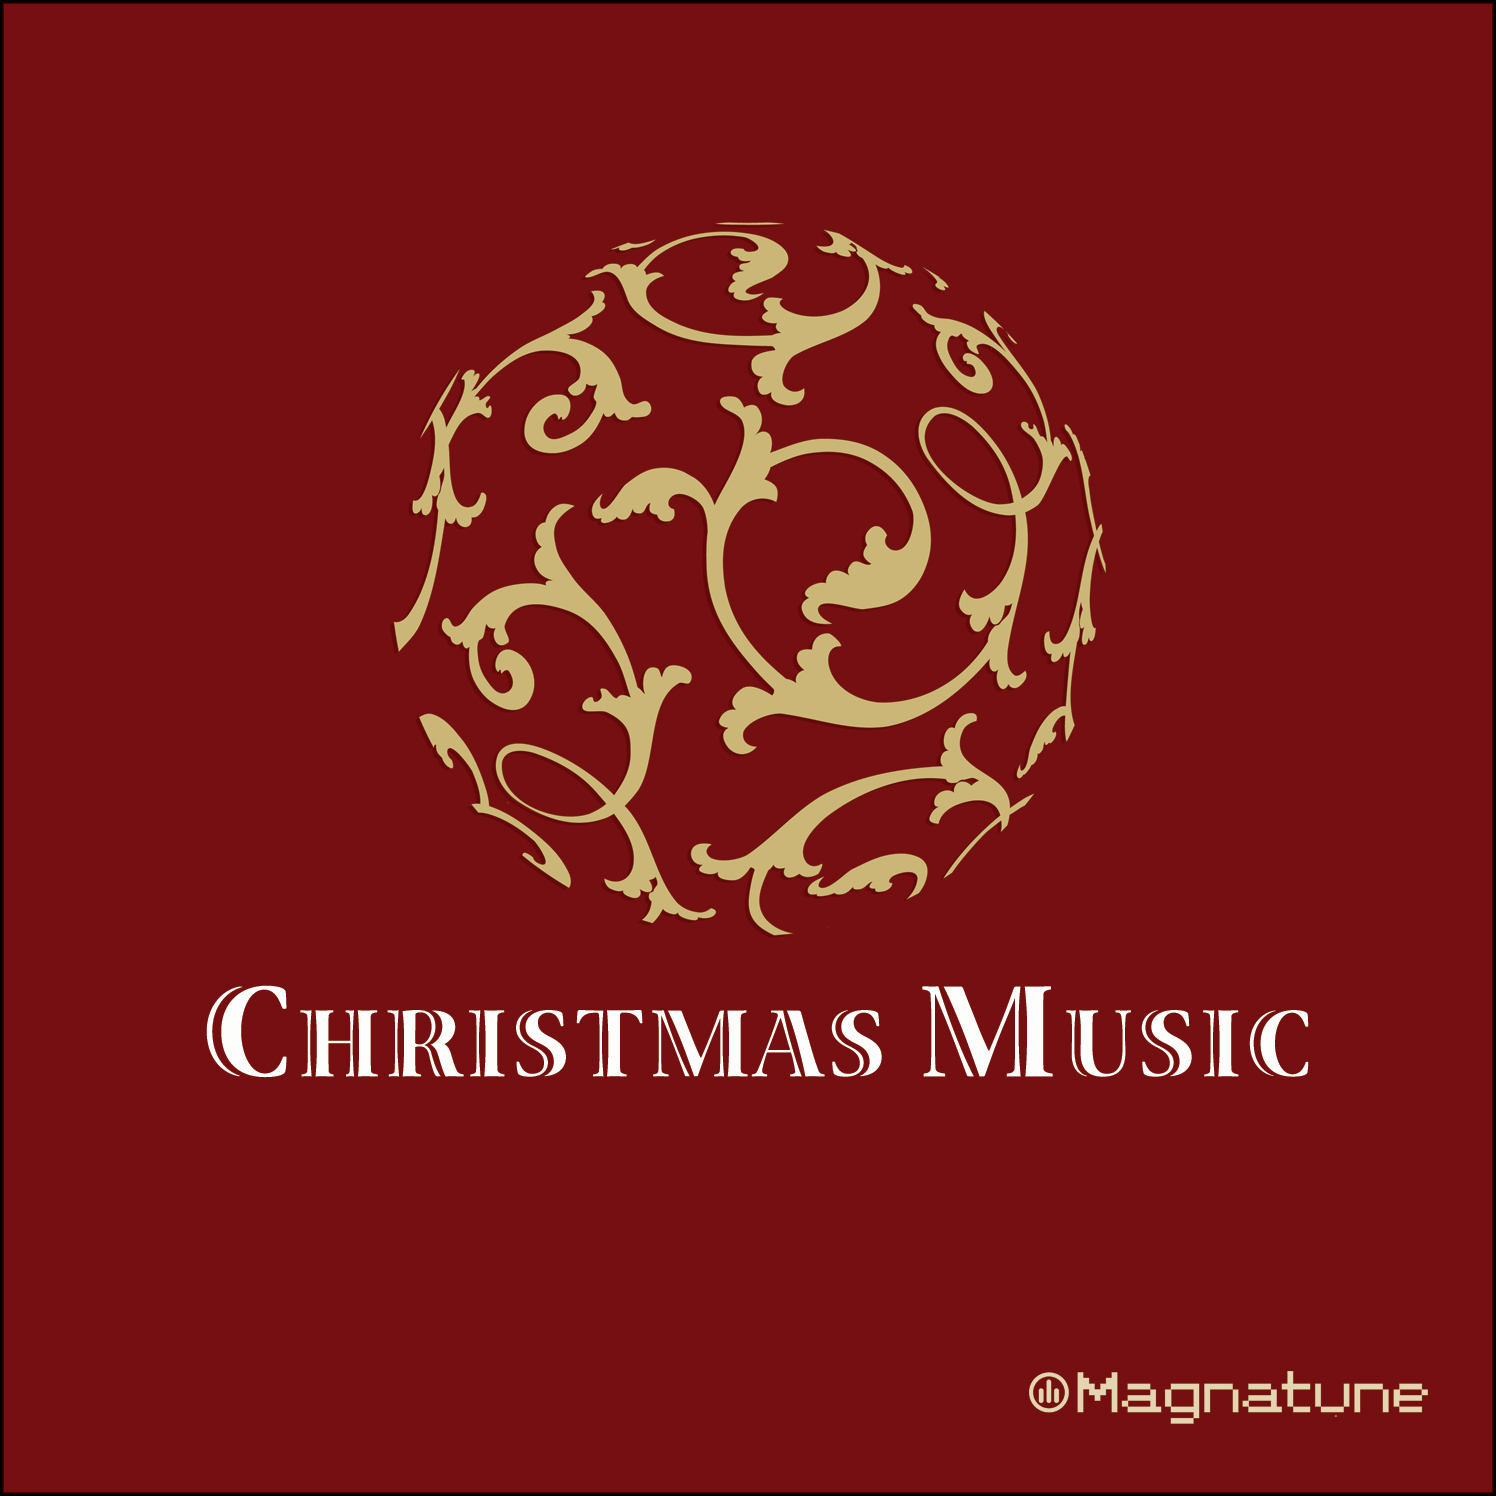 christmas music by magnatune compilation